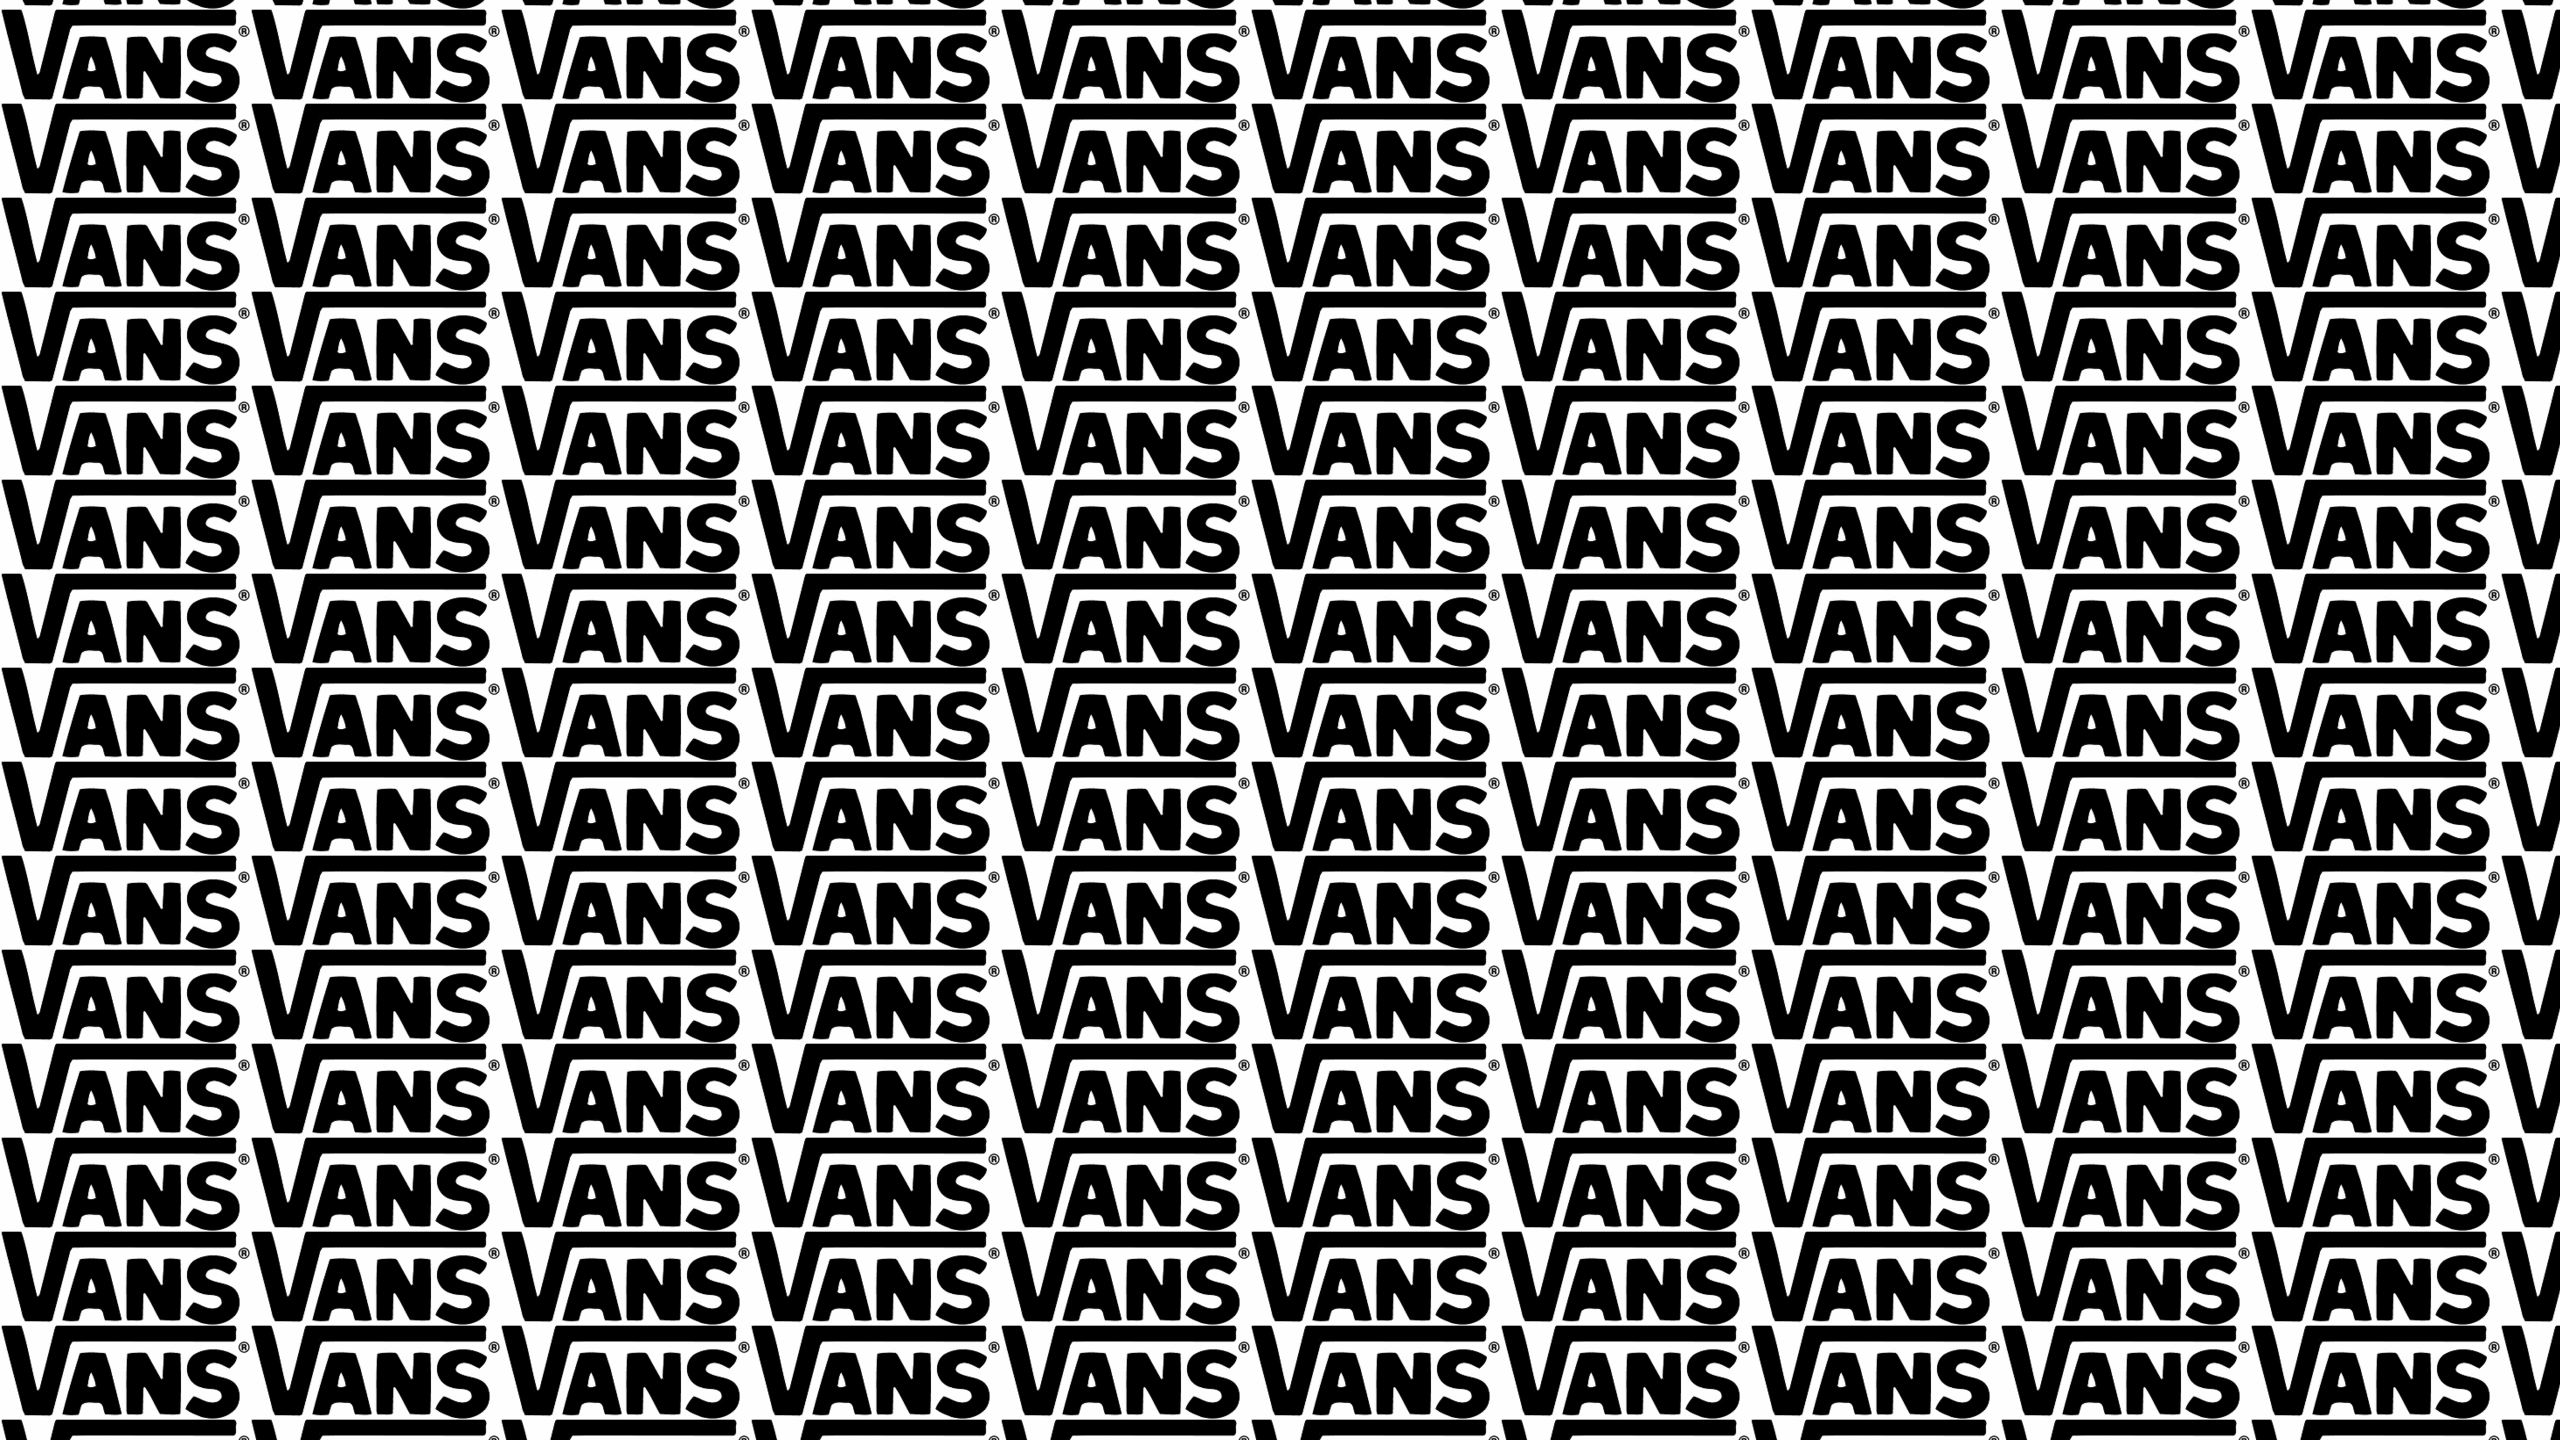 vans desktop wallpaper installing this vans desktop wallpaper is easy ...